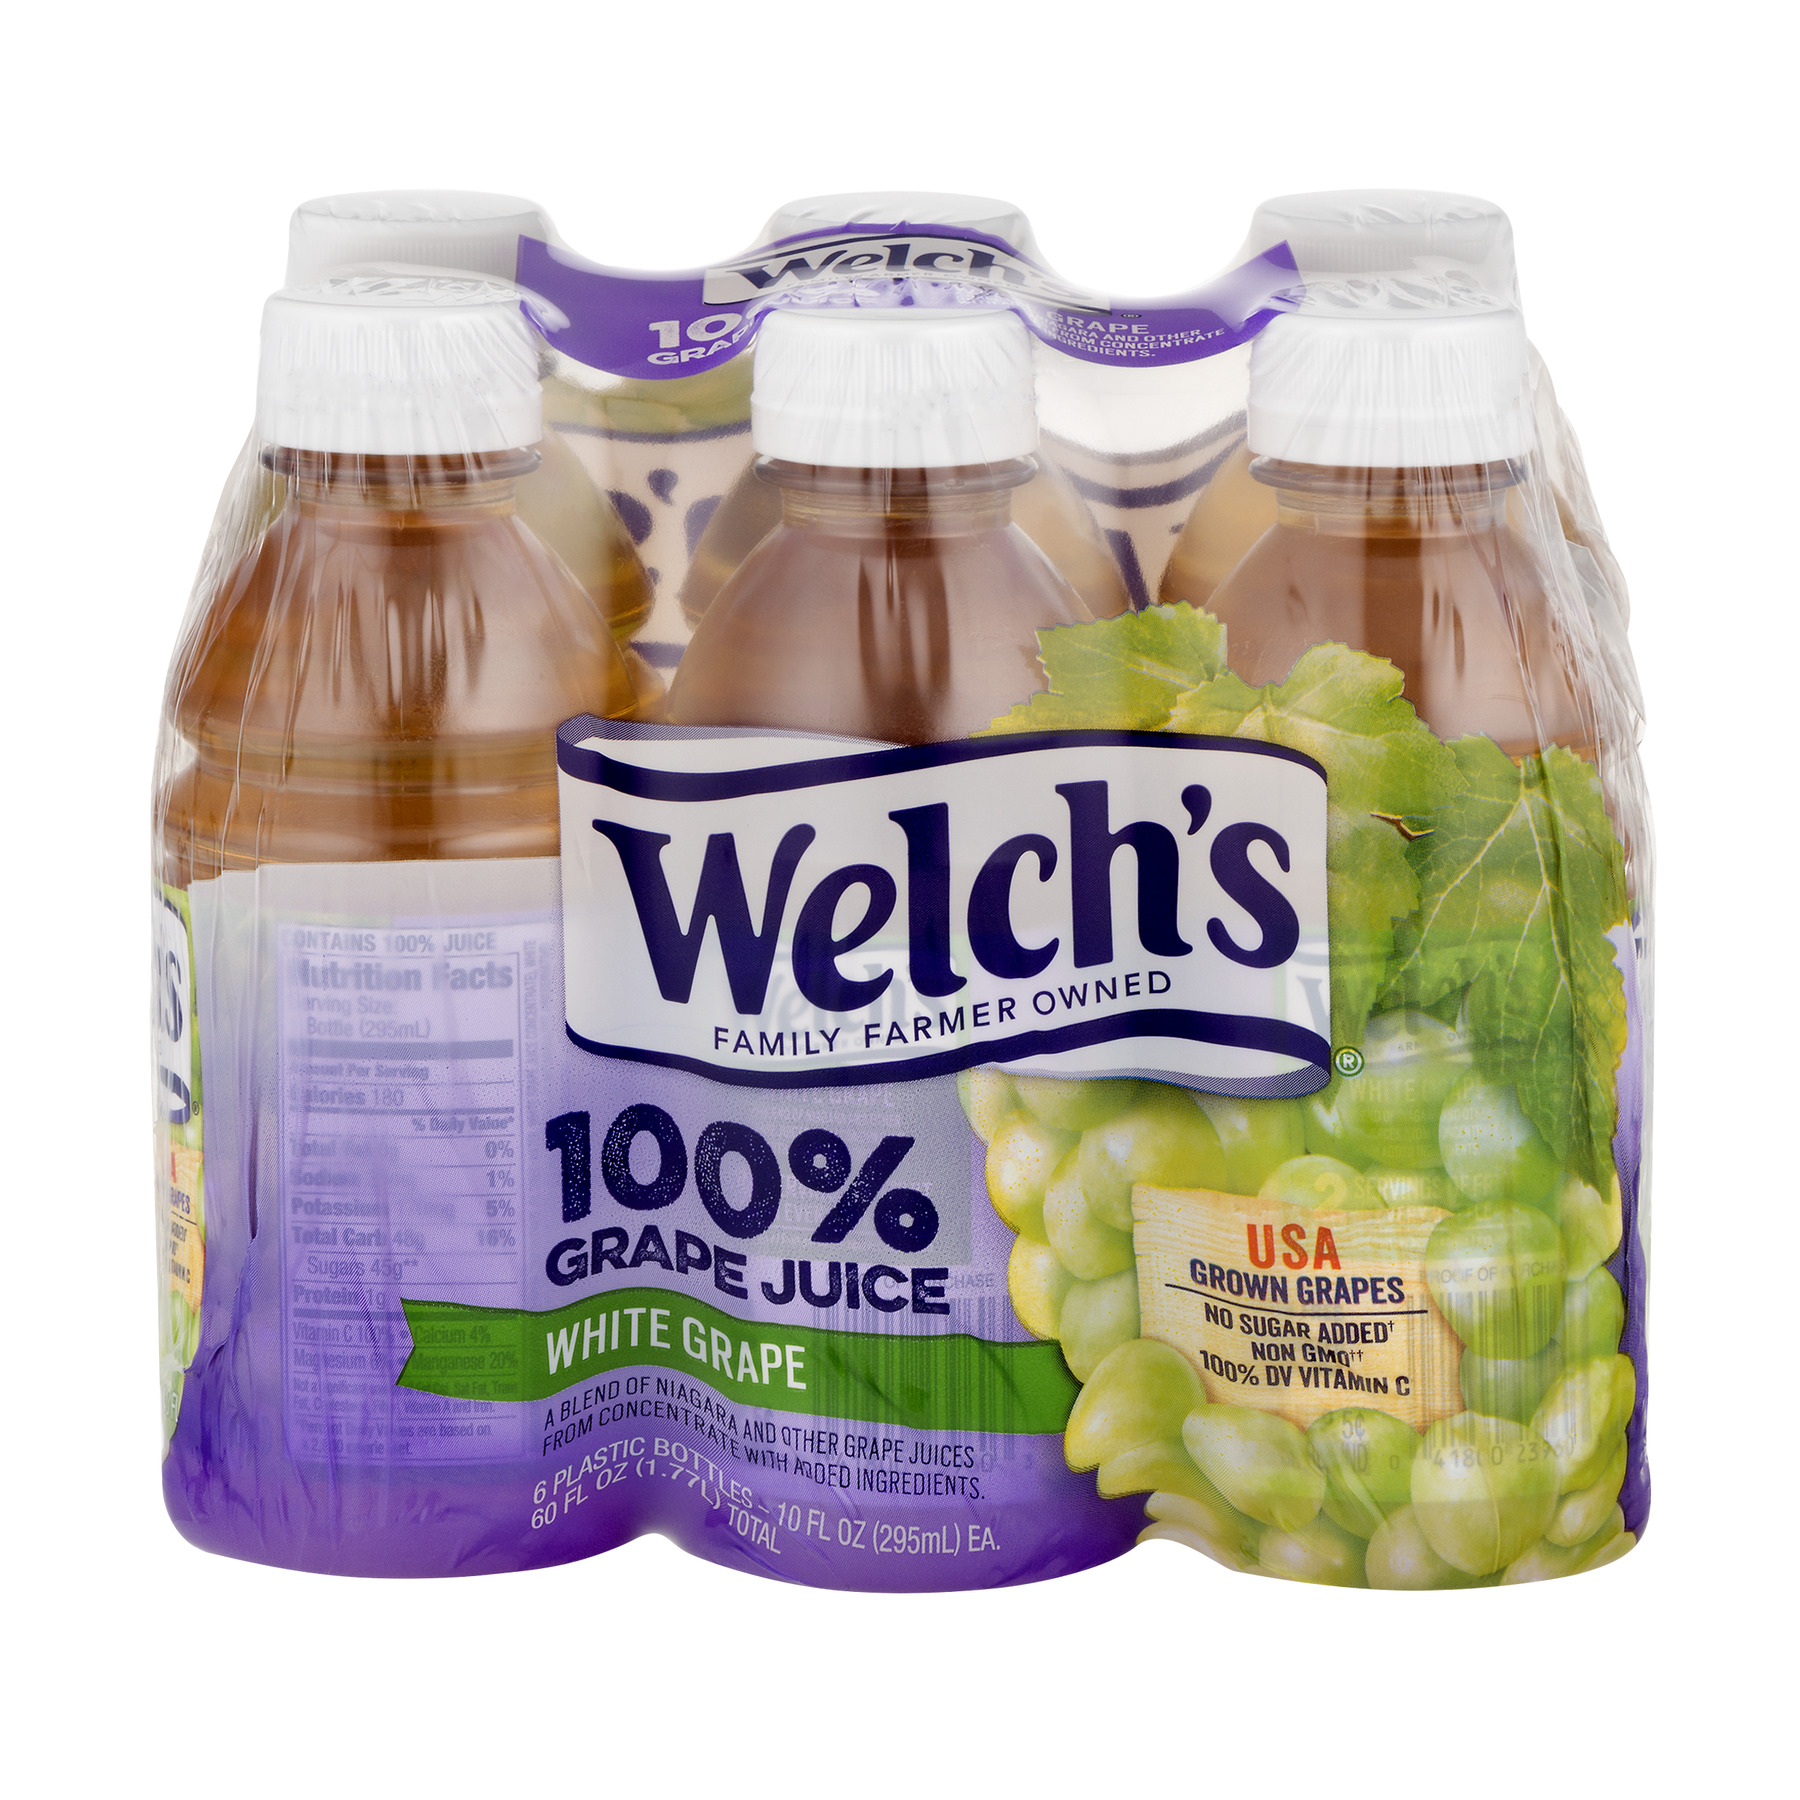 Welch's 100% Juice, White Grape, 10 Fl Oz, 6 Count